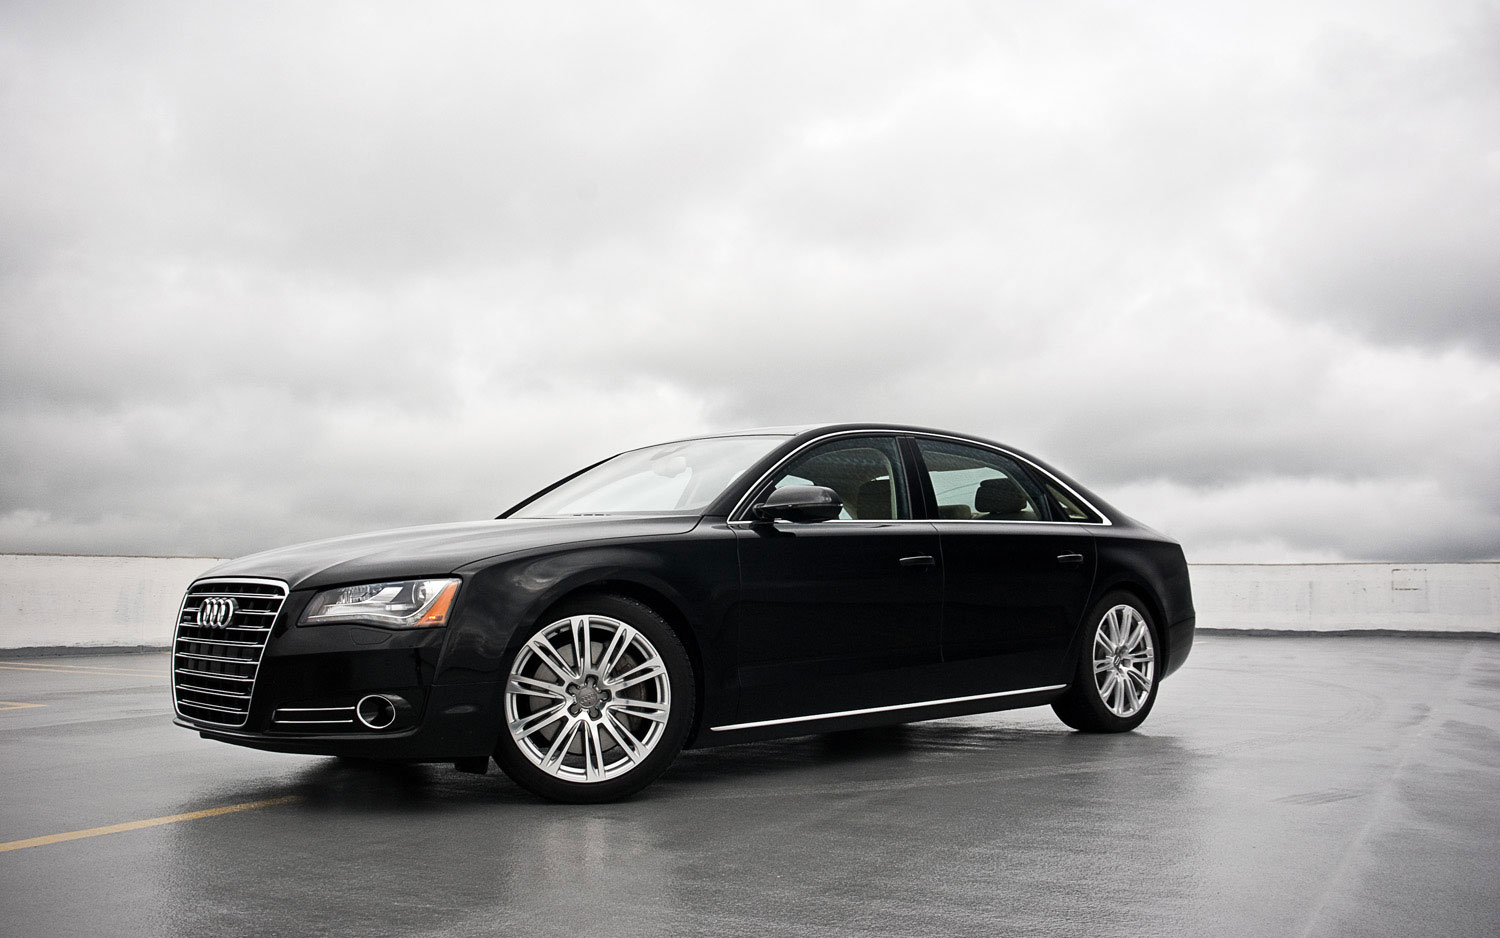 2011 Audi A8l Front Left Side View